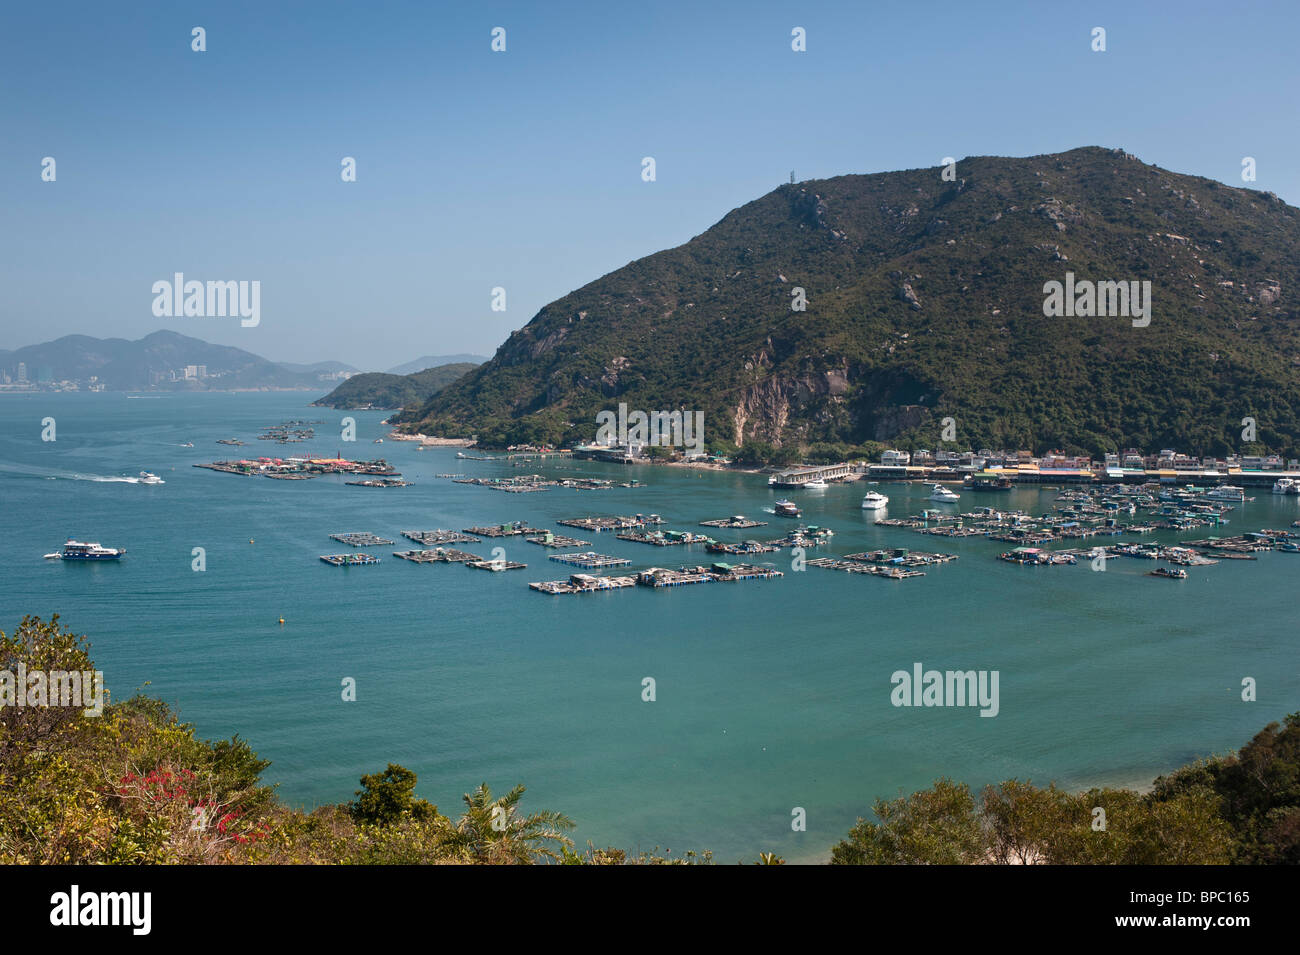 Picnic Bay on Lamma Island with Sok Kwu Wan village. A lot of fish farming going on in the sheltered bay. - Stock Image